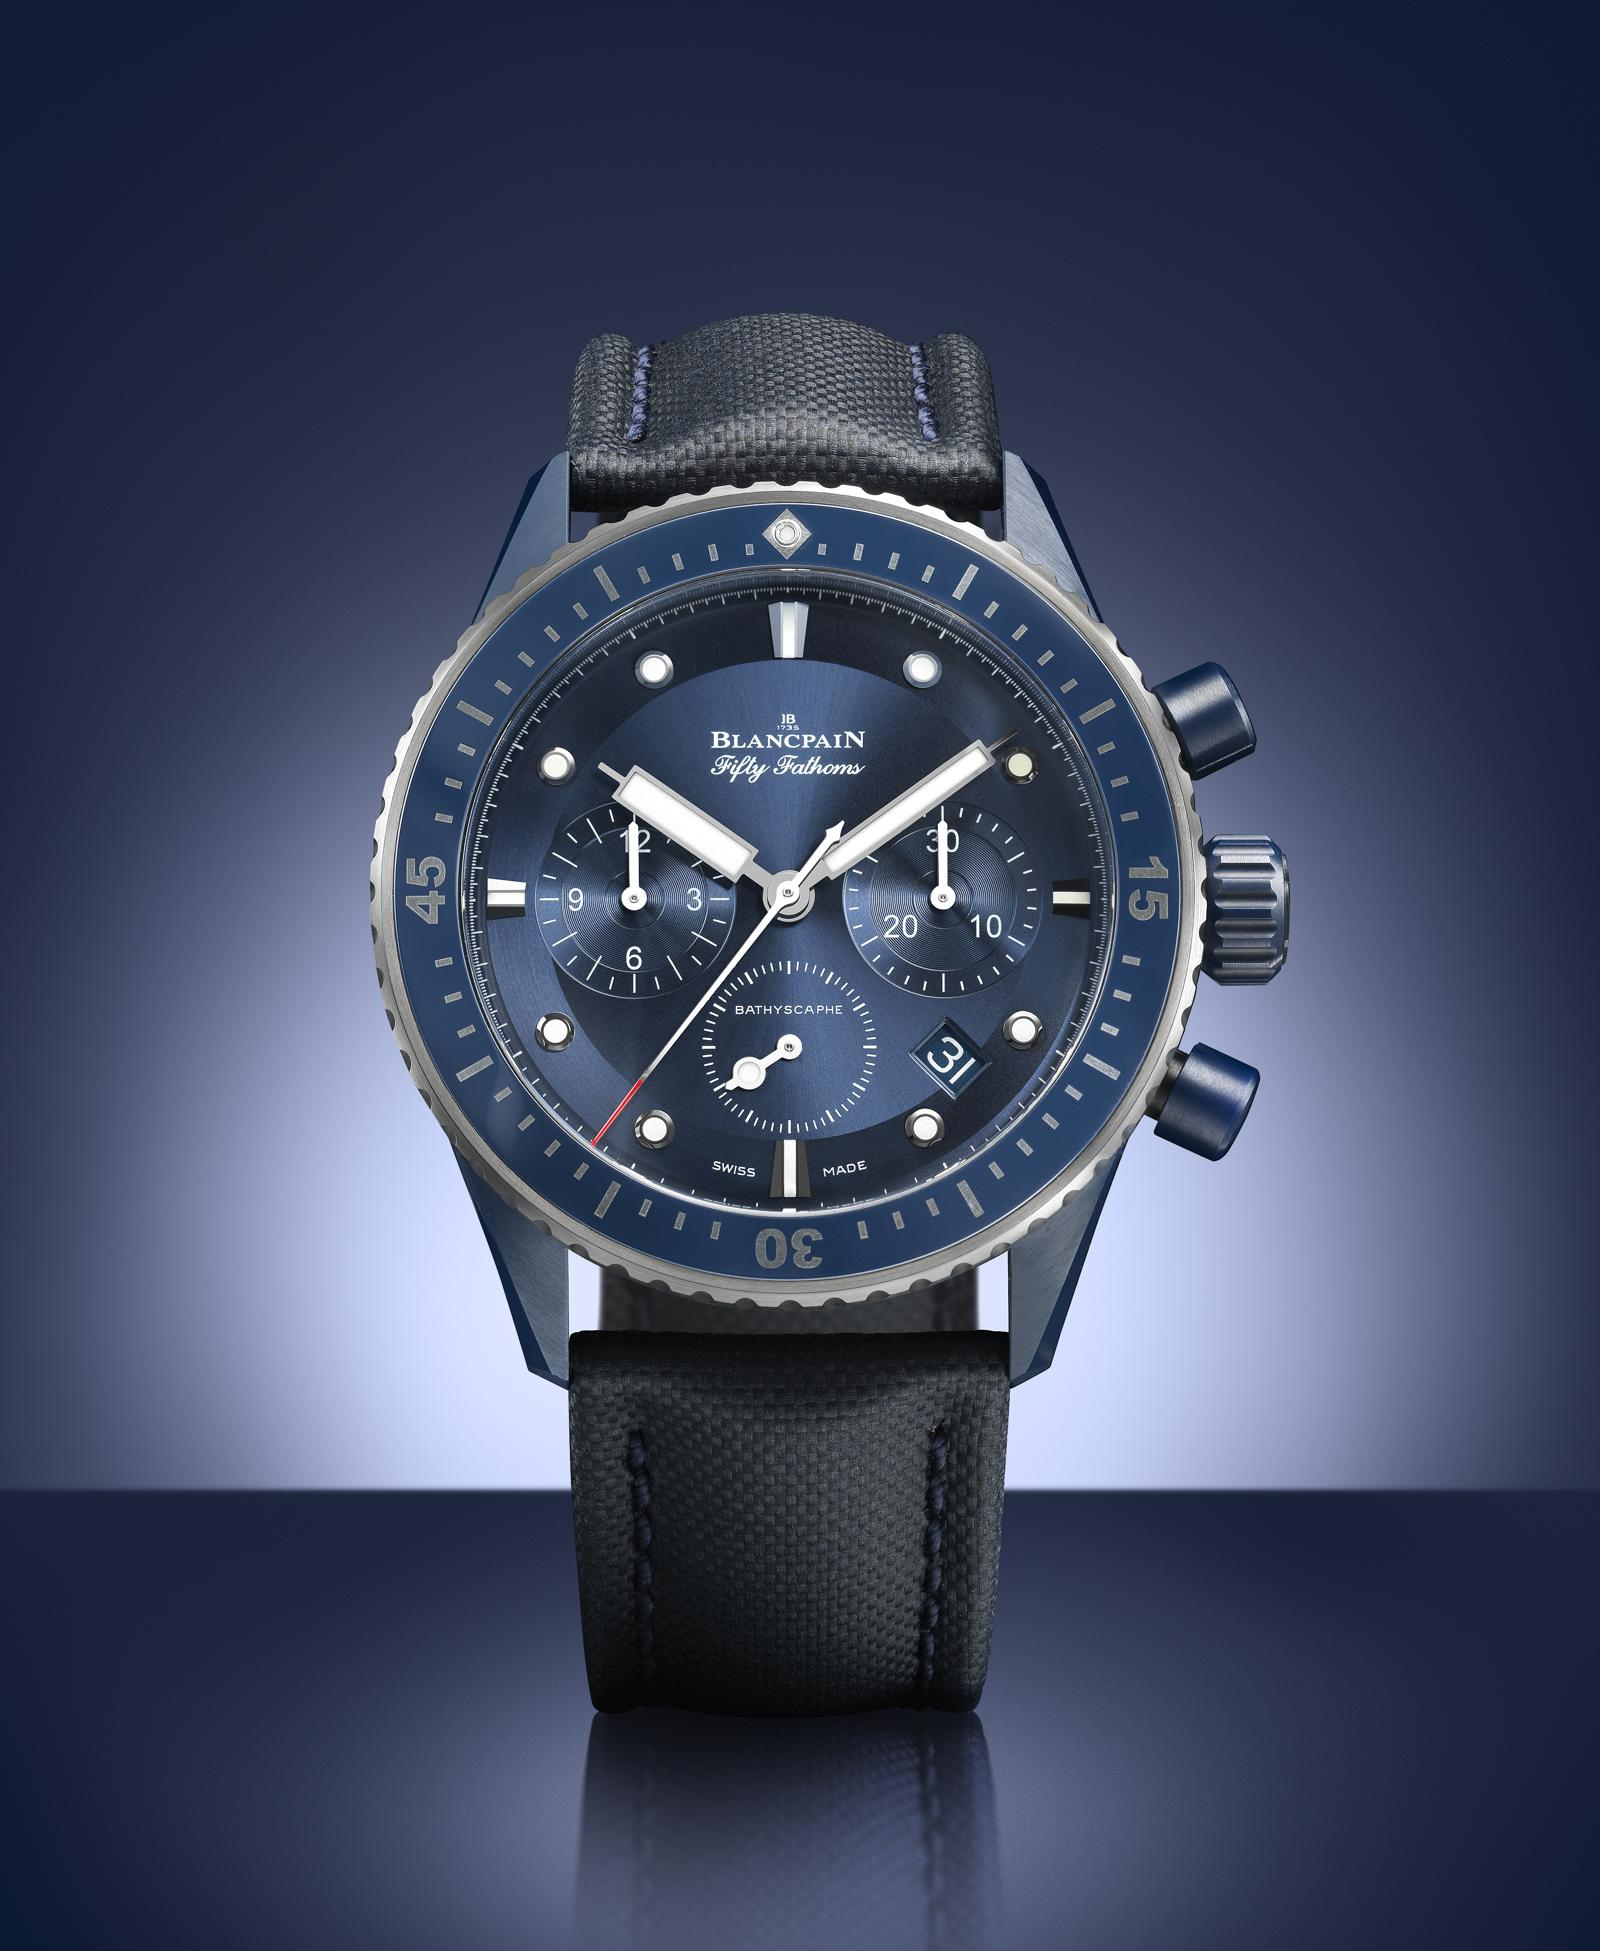 Blancpain Fifty Fathoms Bathyscaphe Bucherer Blue Edition soldat